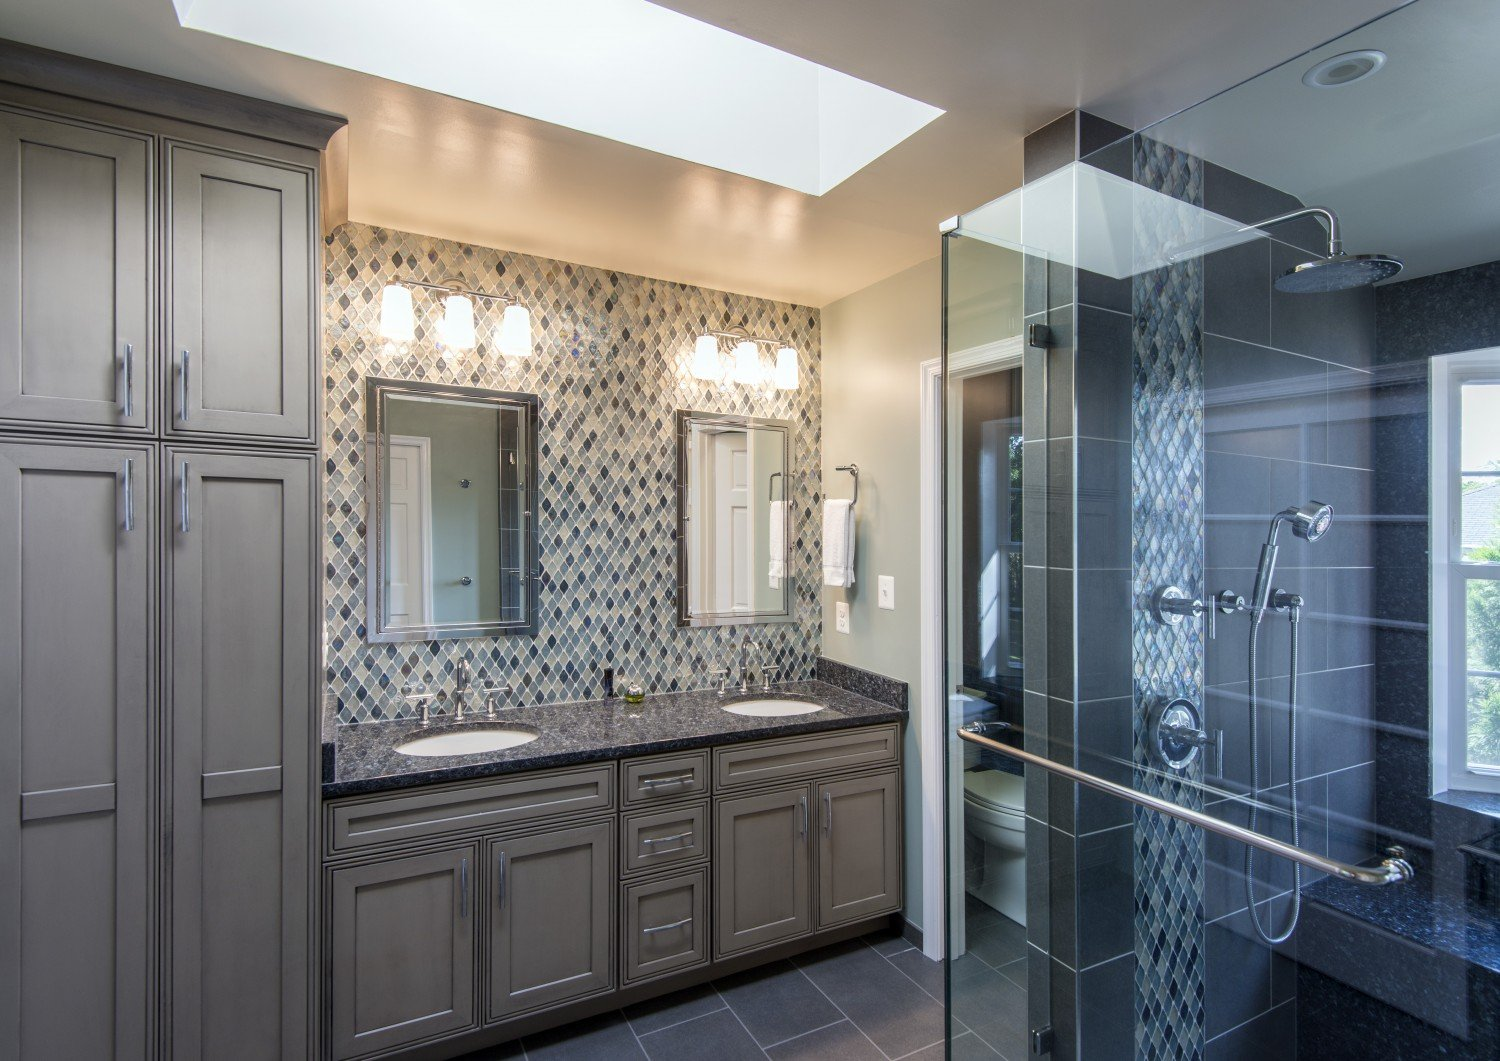 Vanity-with-full-wall-tile-backsplash